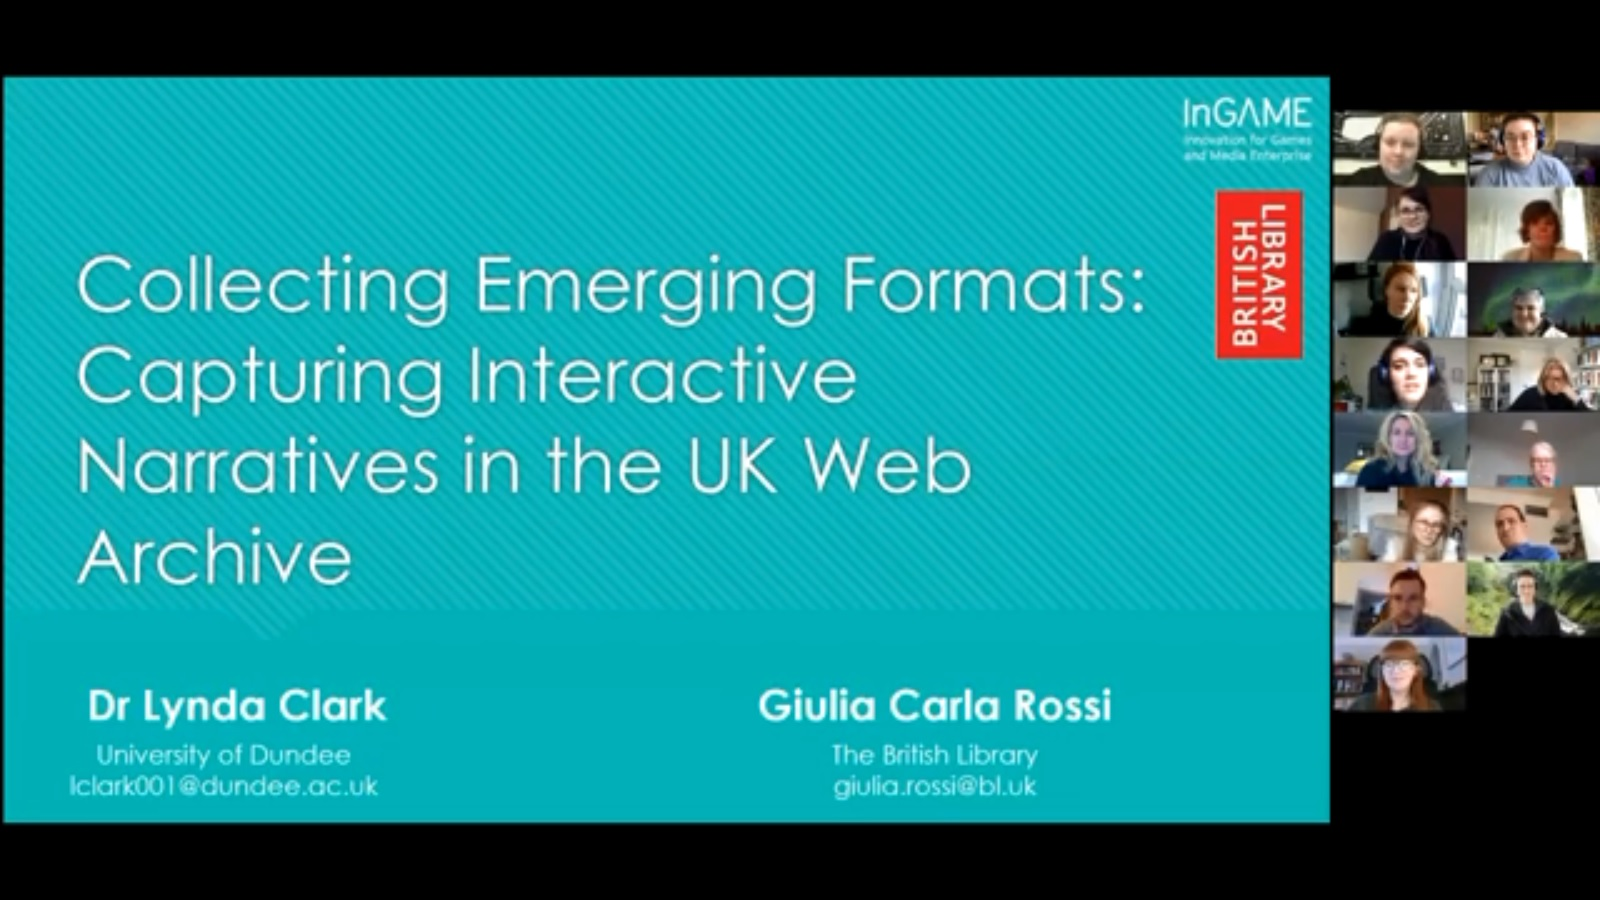 Workshop 2 – Lynda Clark and Giulia Carla Rossi – Collecting Emerging Formats